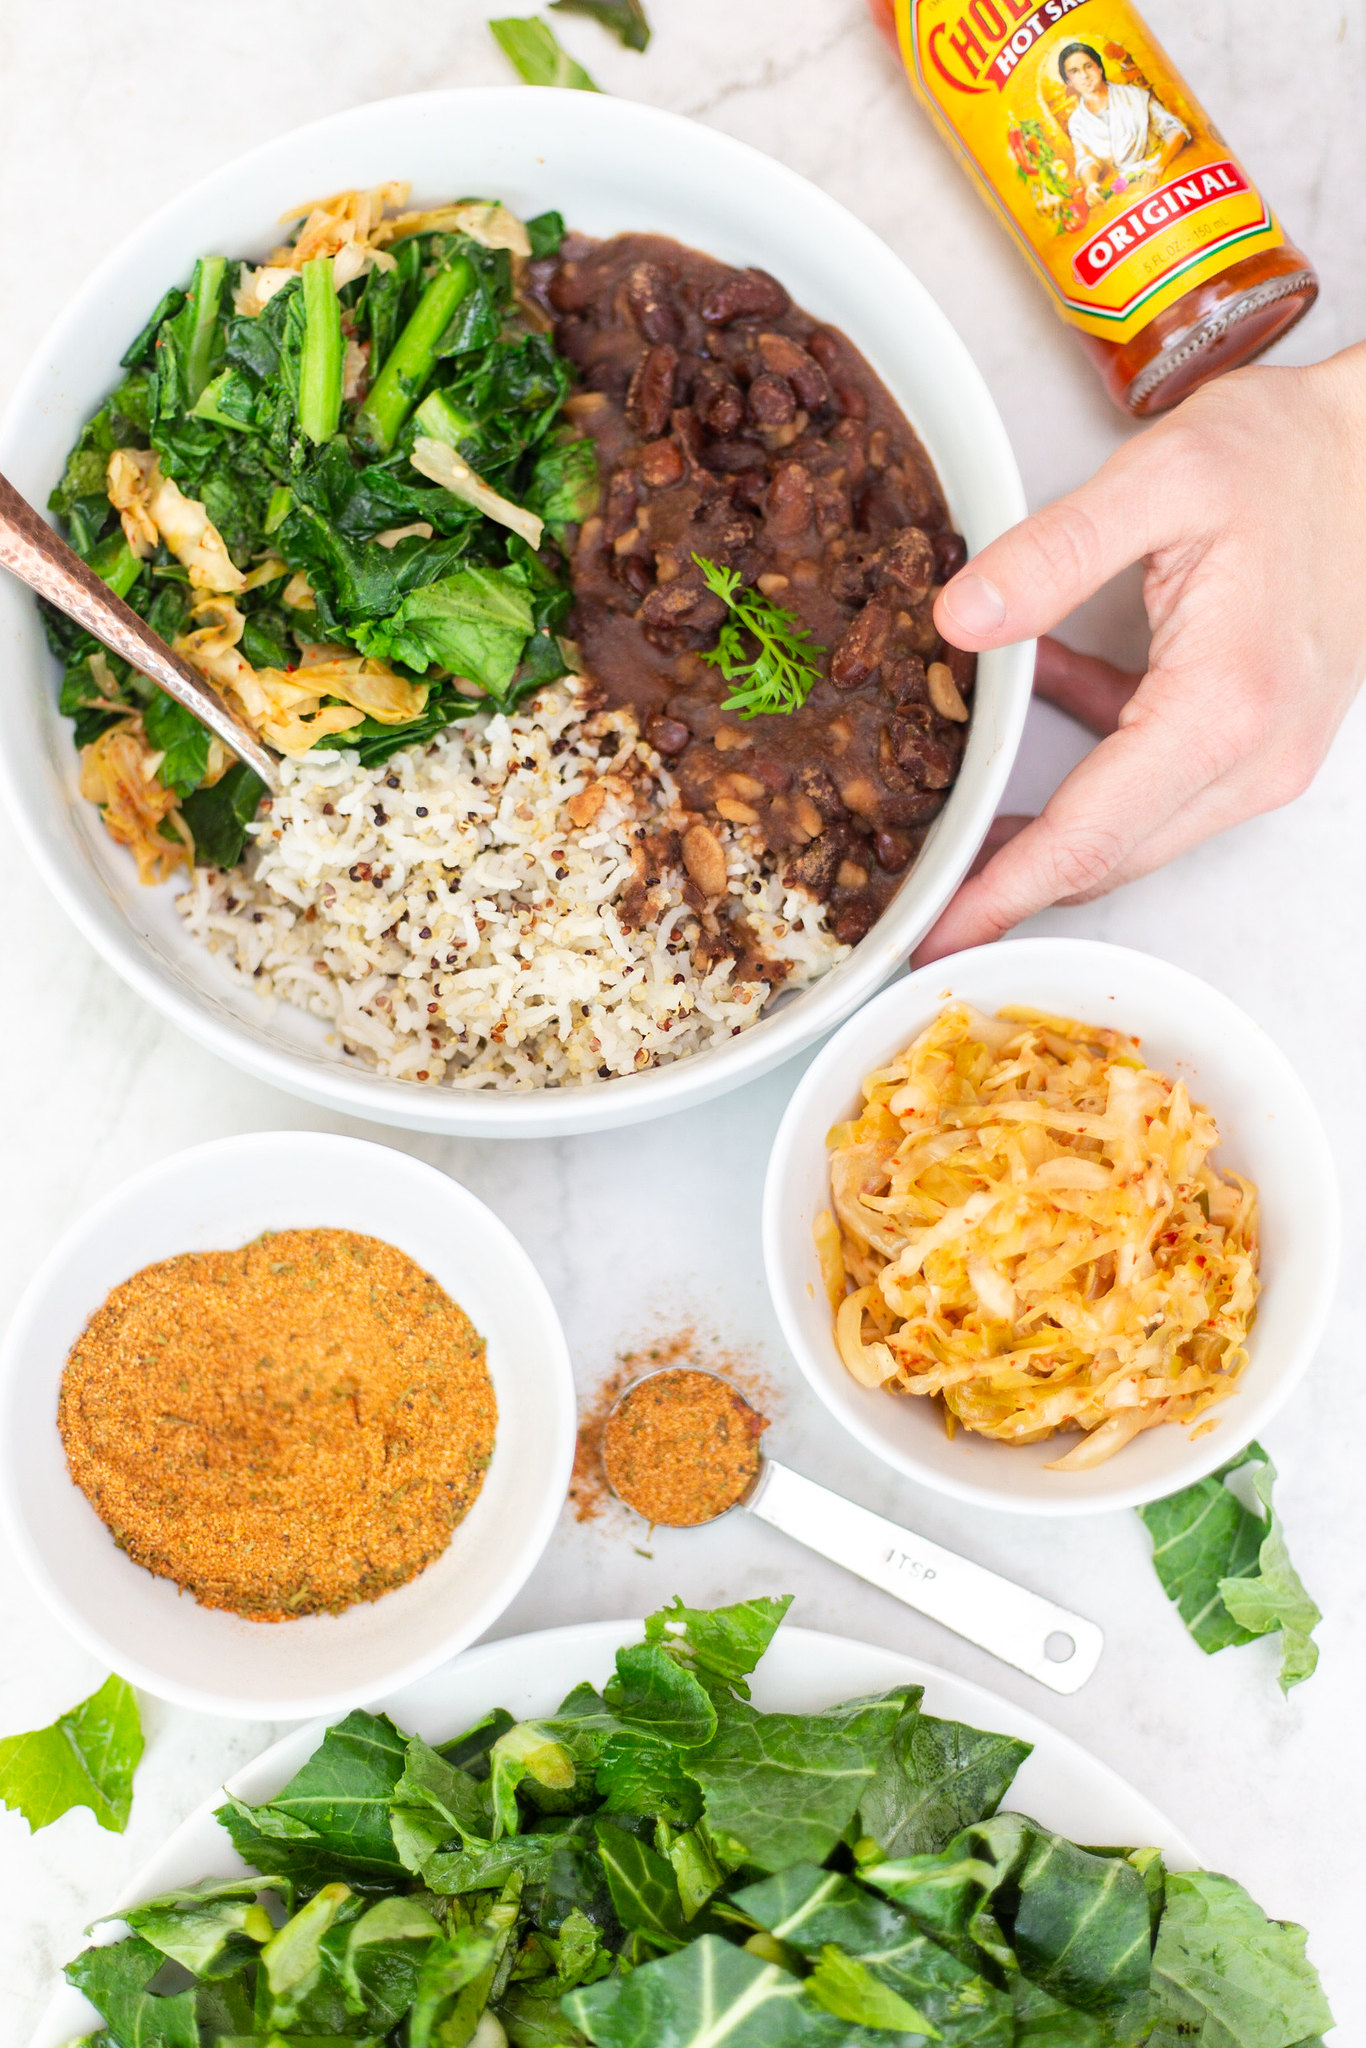 Louisiana Style Vegan Red Beans and Rice | Red Beans and Rice with Sautéed Southern Greens and Kimchi